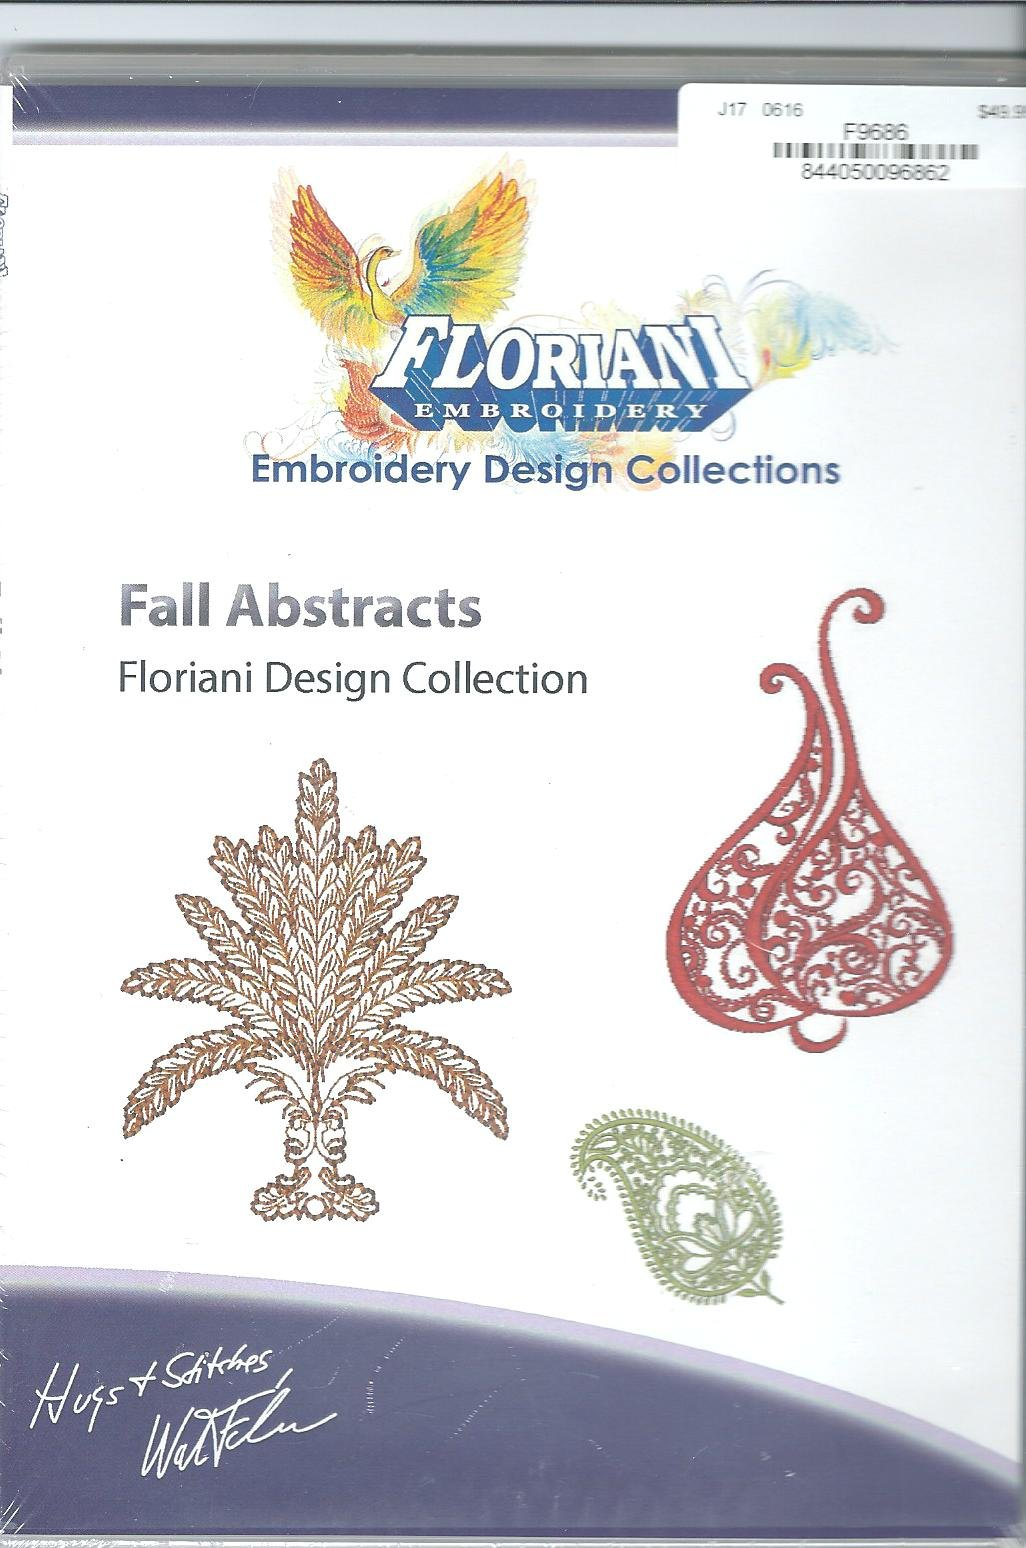 Floriani Embroidery Design Collection Fall Abstracts